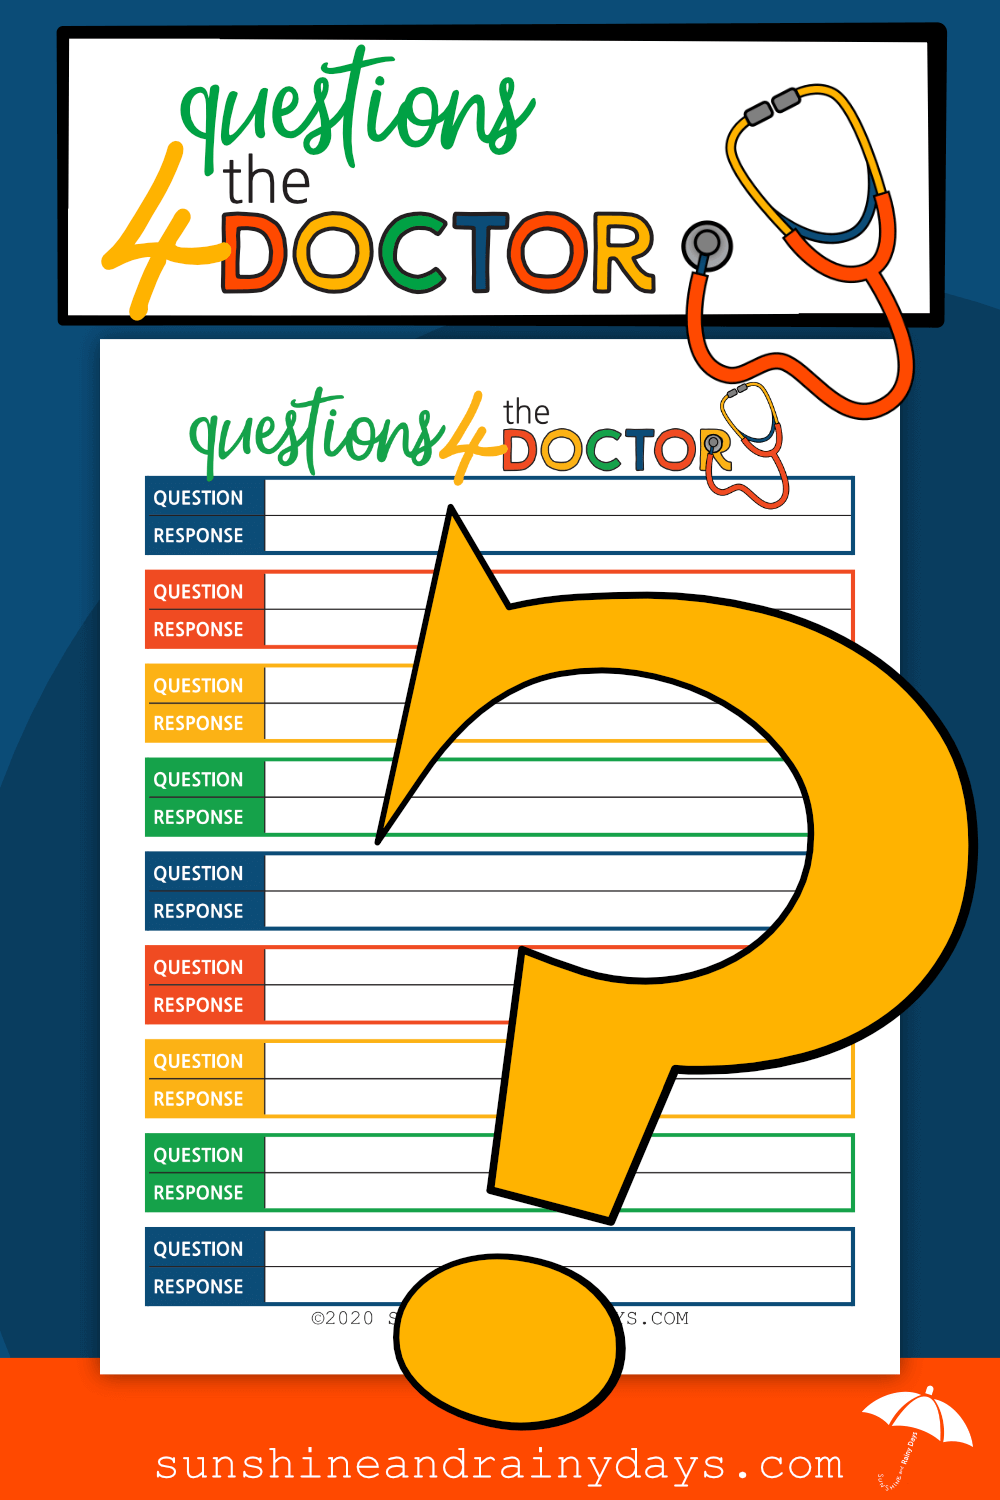 Questions For The Doctor (PDF)